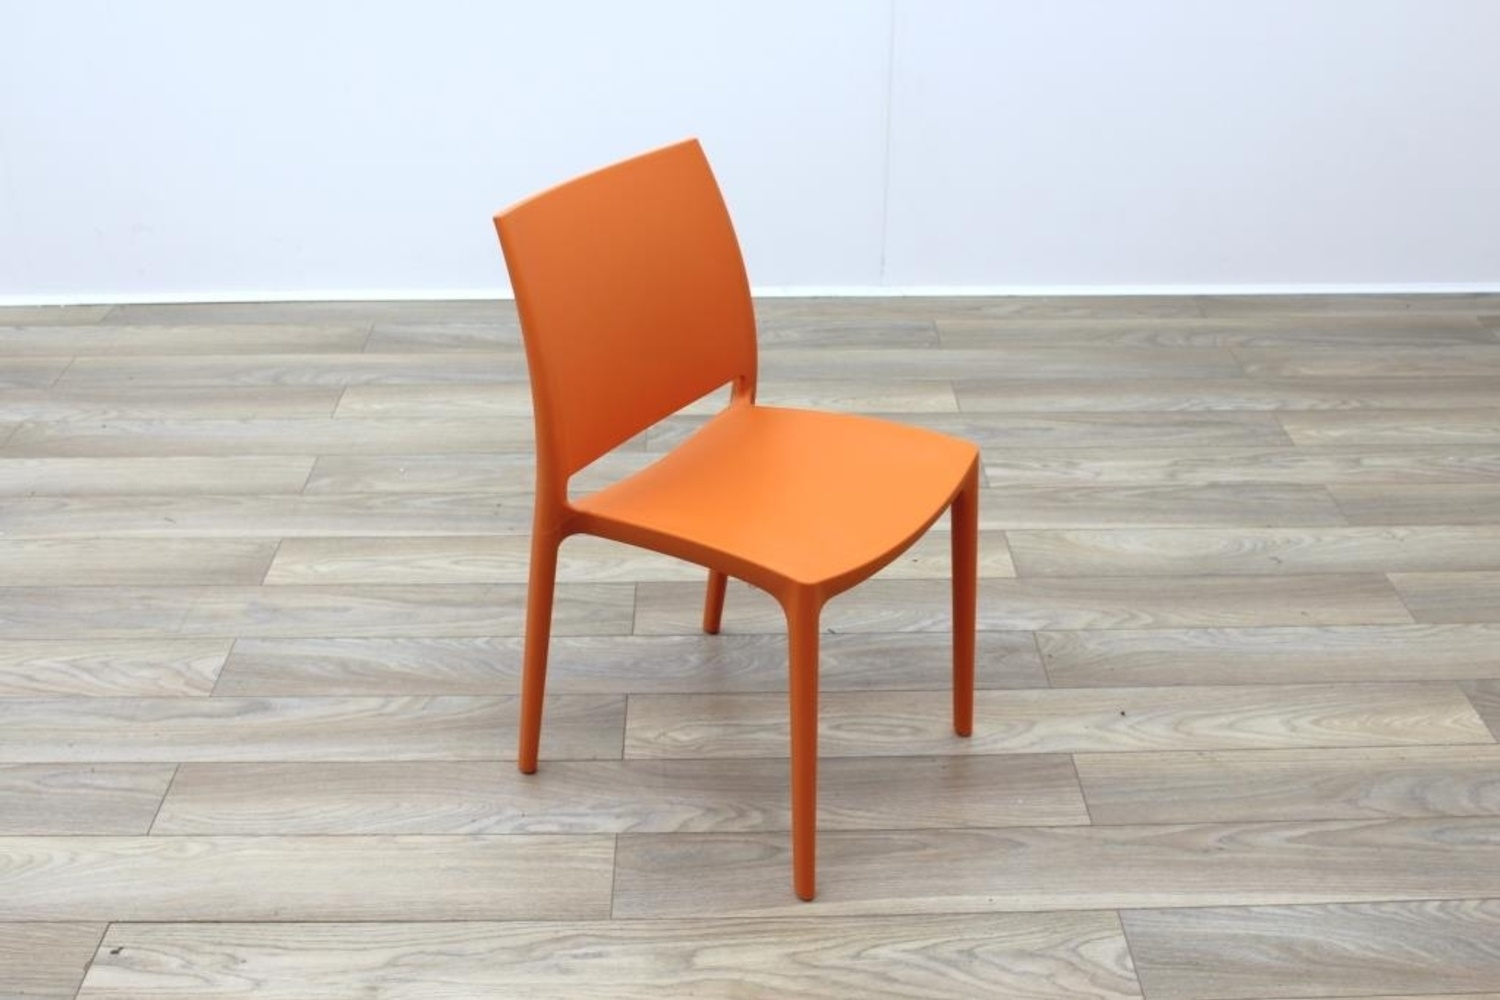 New Orange Moulded Plastic Stacking Office Canteen Cafe Meeting School Chairs